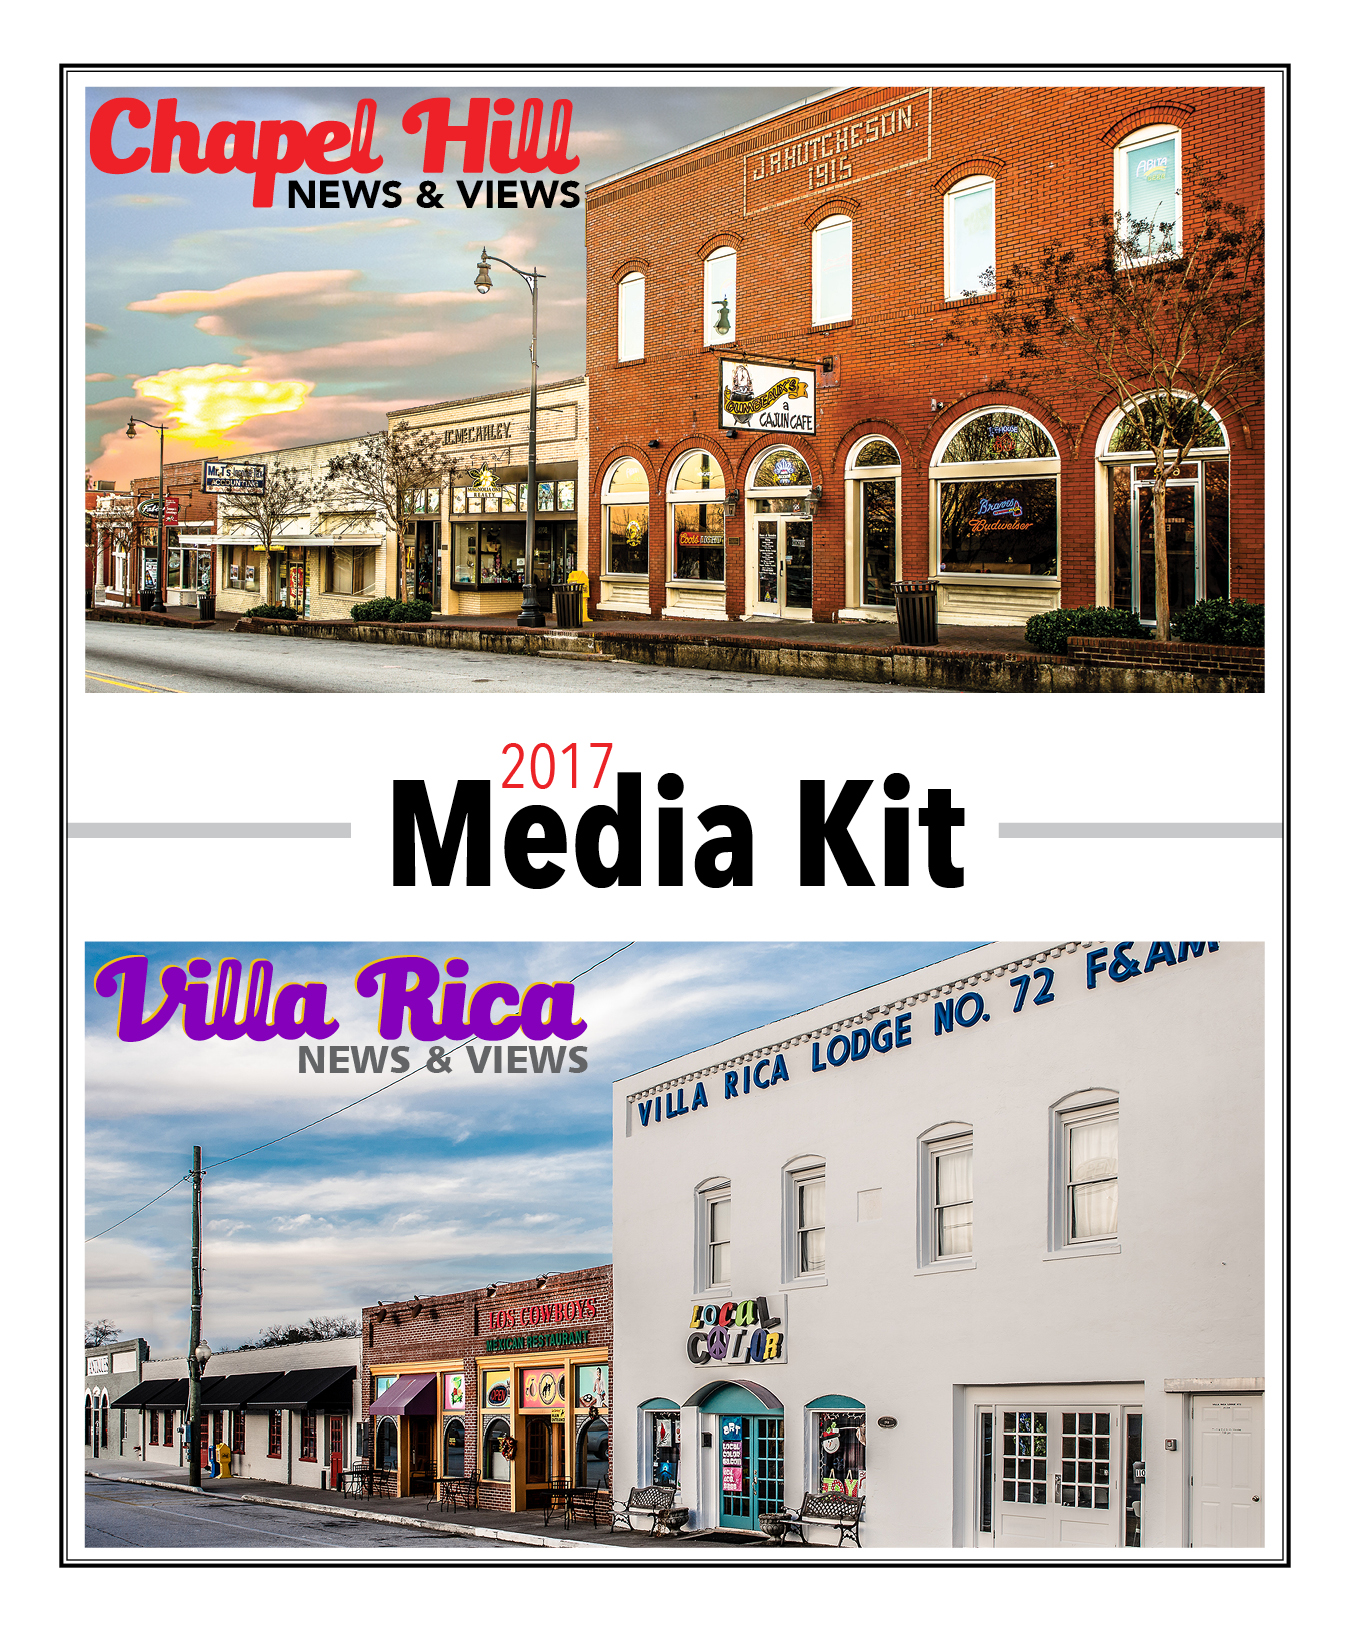 News & Views Media Kit